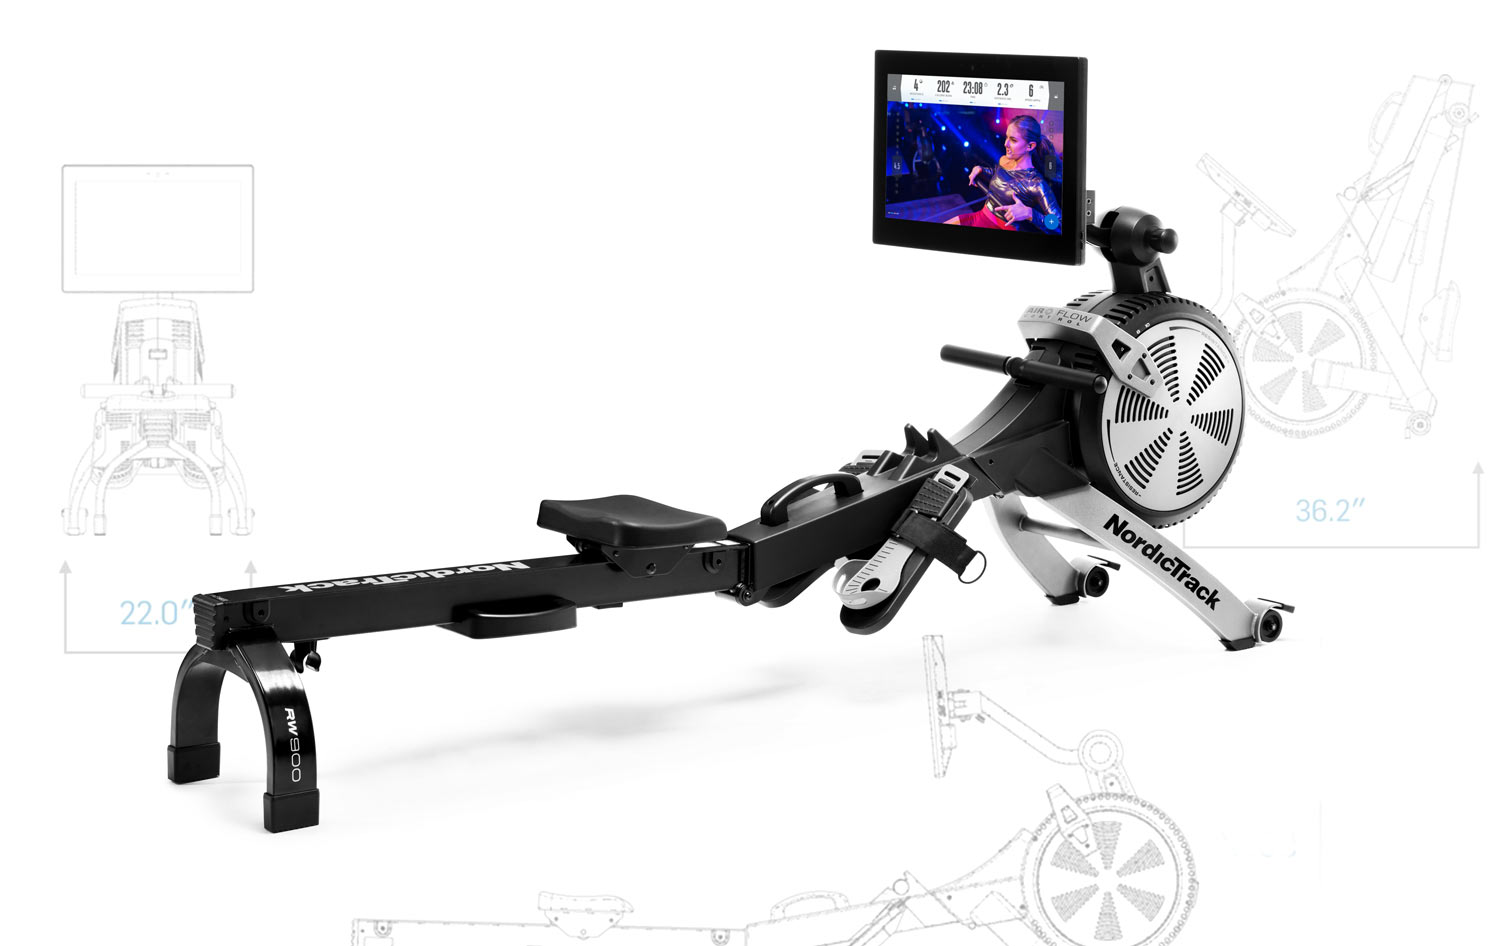 Eliminate treks to the gym or dealing with the usual gym hassles. The   Nordictrack RW900  Rowing Machine  is designed to provide an quiet smooth rowing motion and an immersive workout experience from home